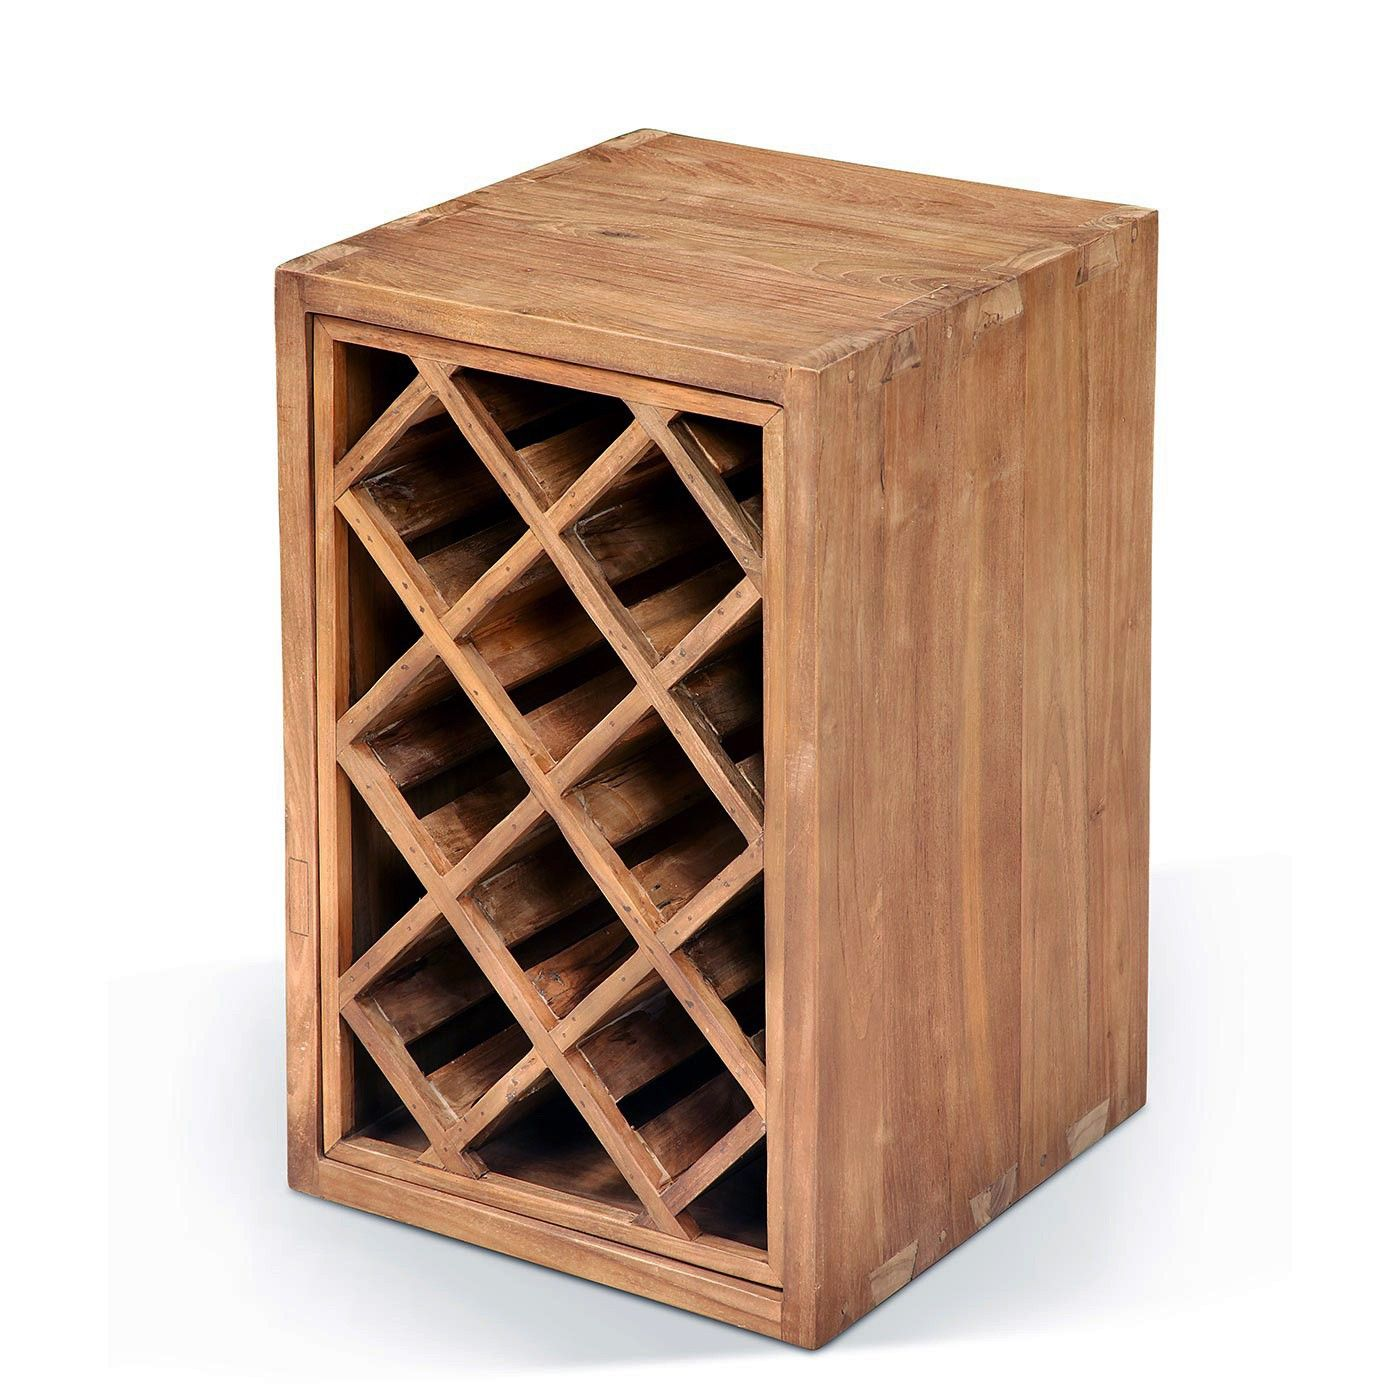 Charmant Small Wine Rack   Raft Furniture, London